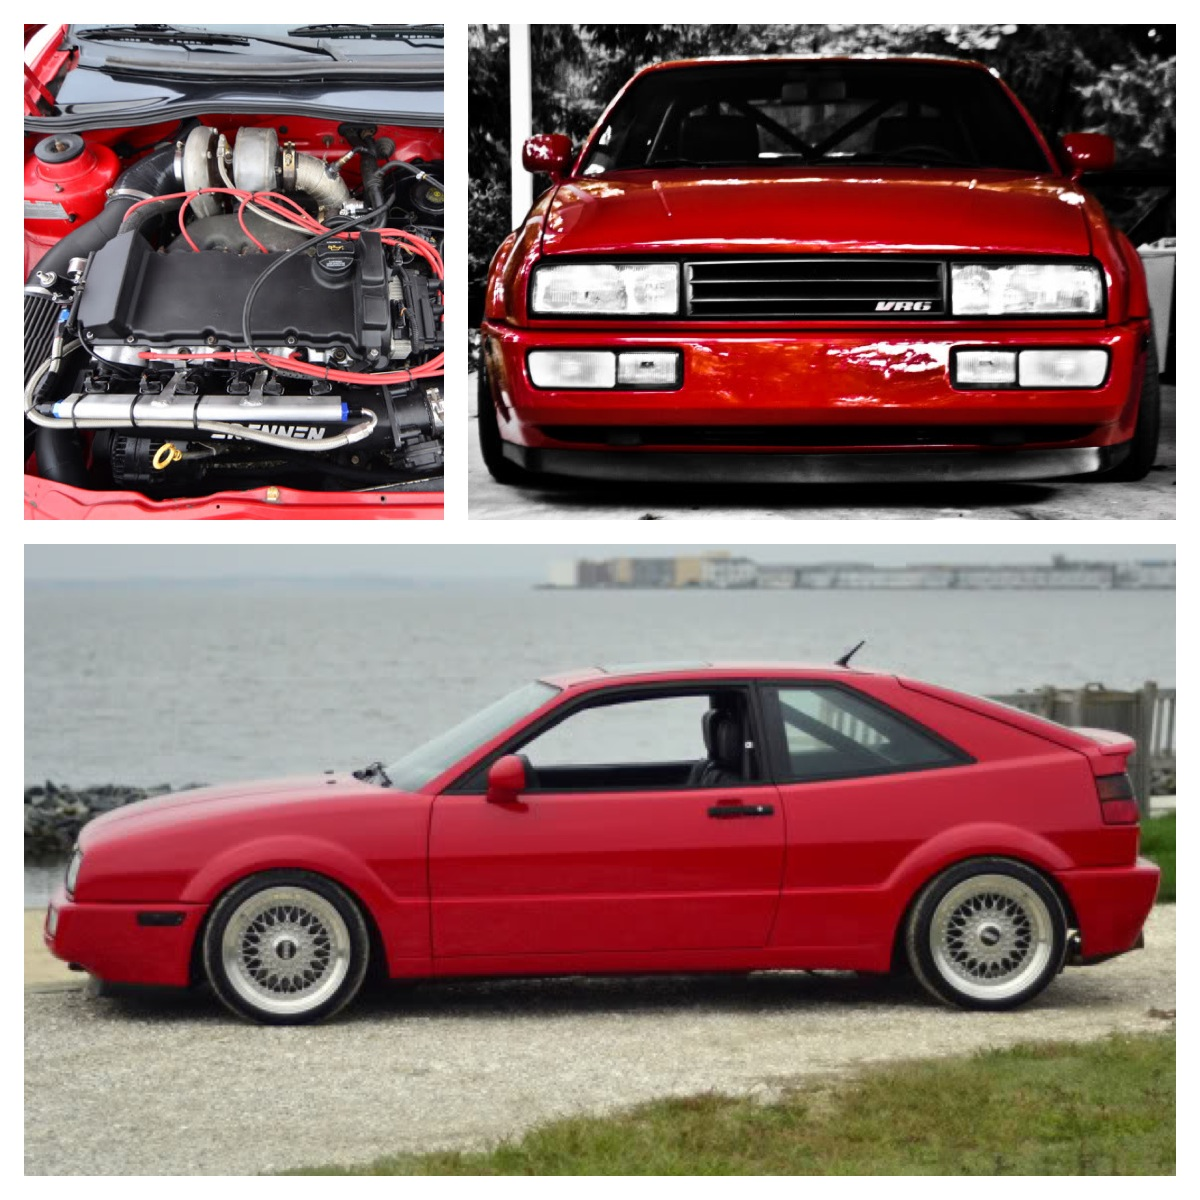 Flash Red 1993 Volkswagen Corrado SLC